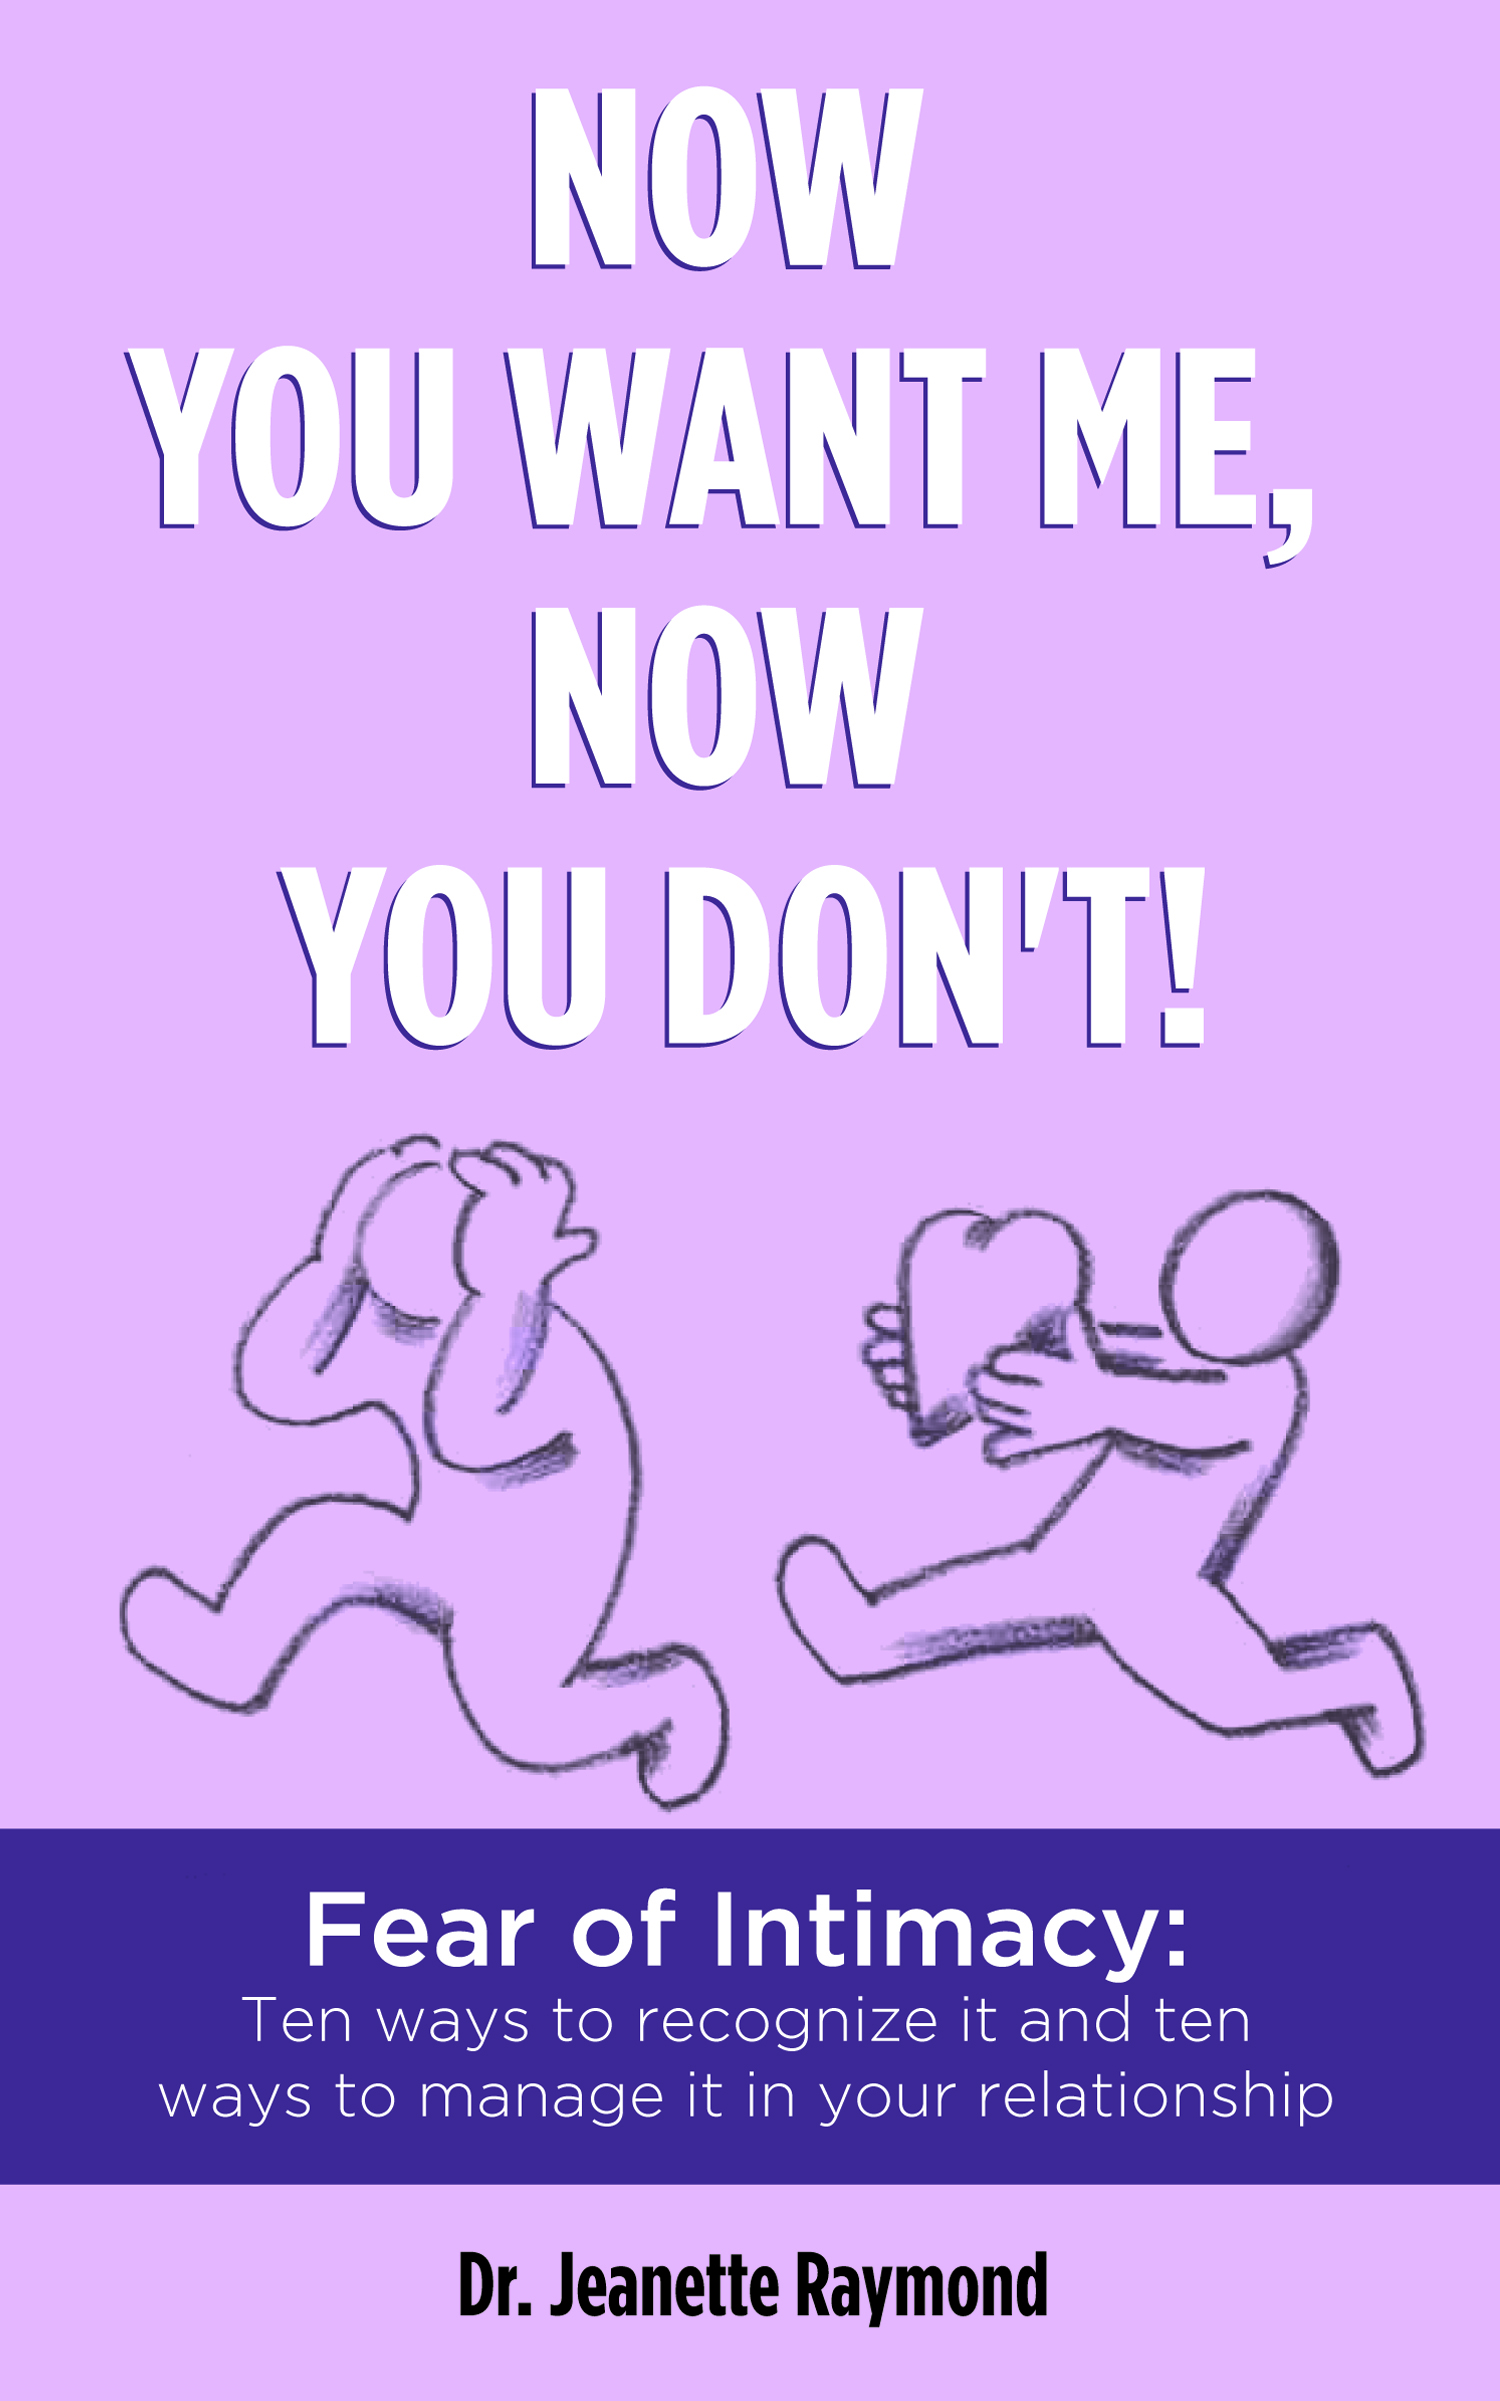 How to conquer the fear of intimacy book for couples